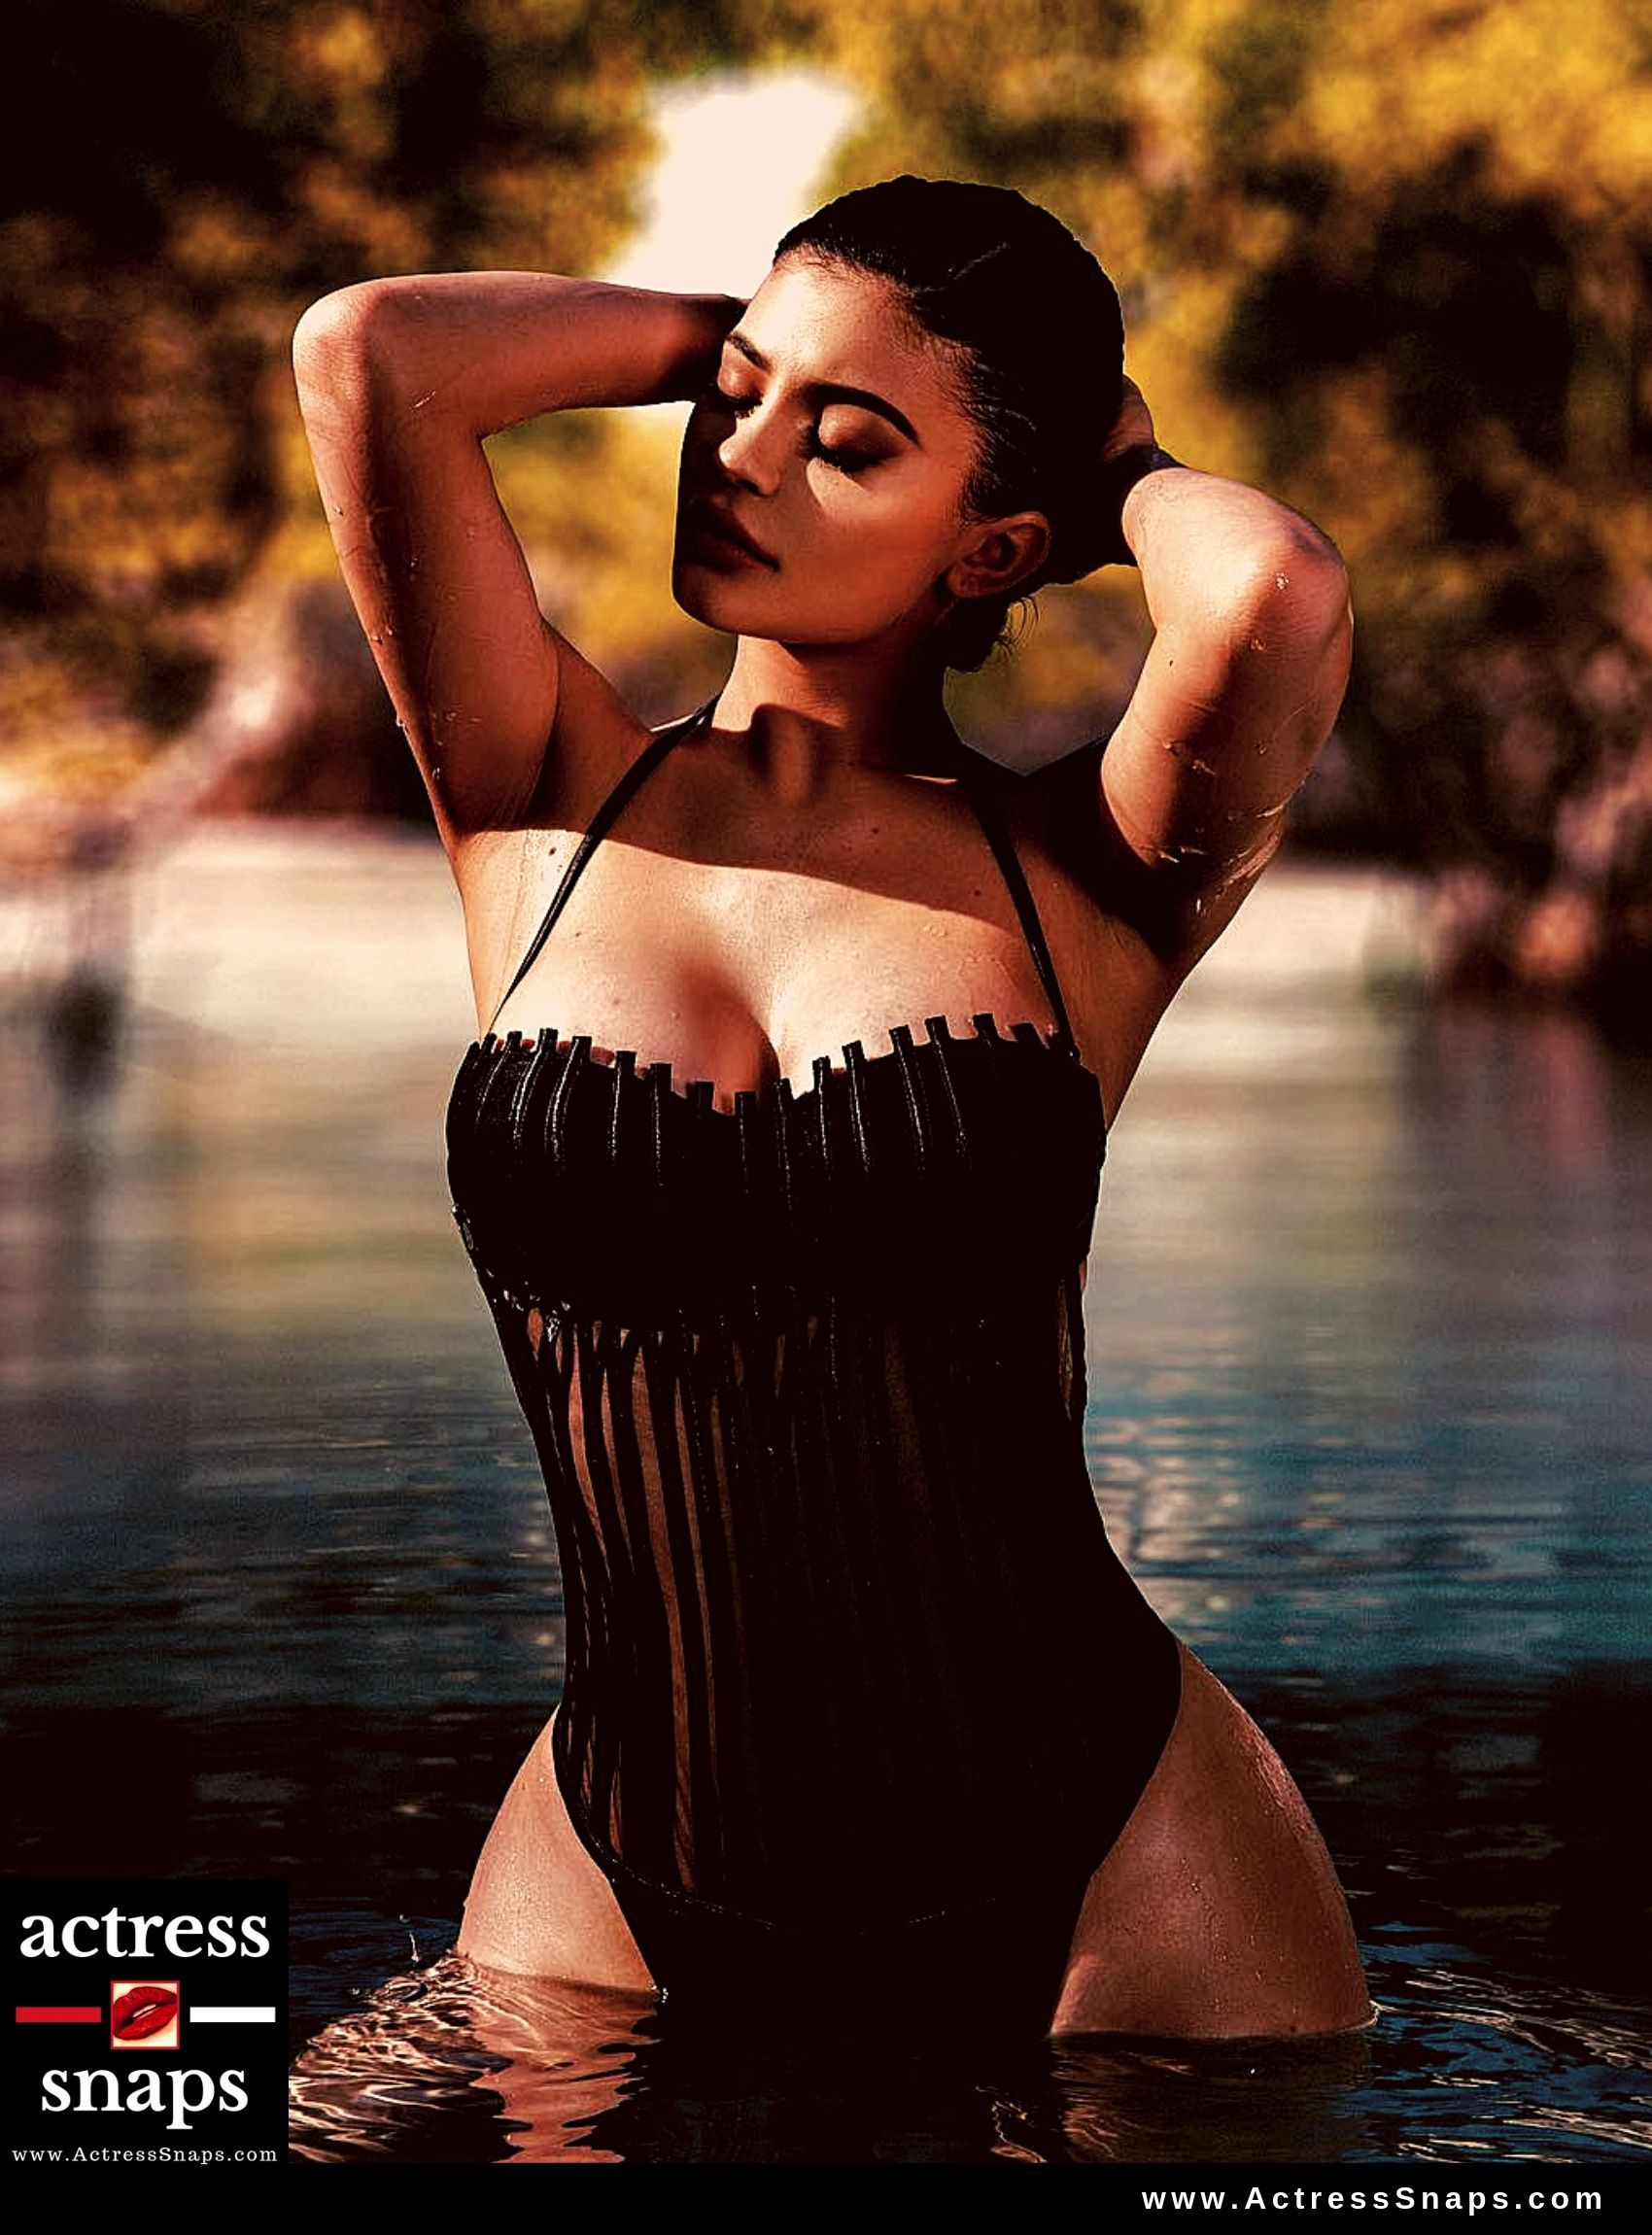 Sexy Kylie Jenner Photos Collection - Sexy Actress Pictures | Hot Actress Pictures - ActressSnaps.com